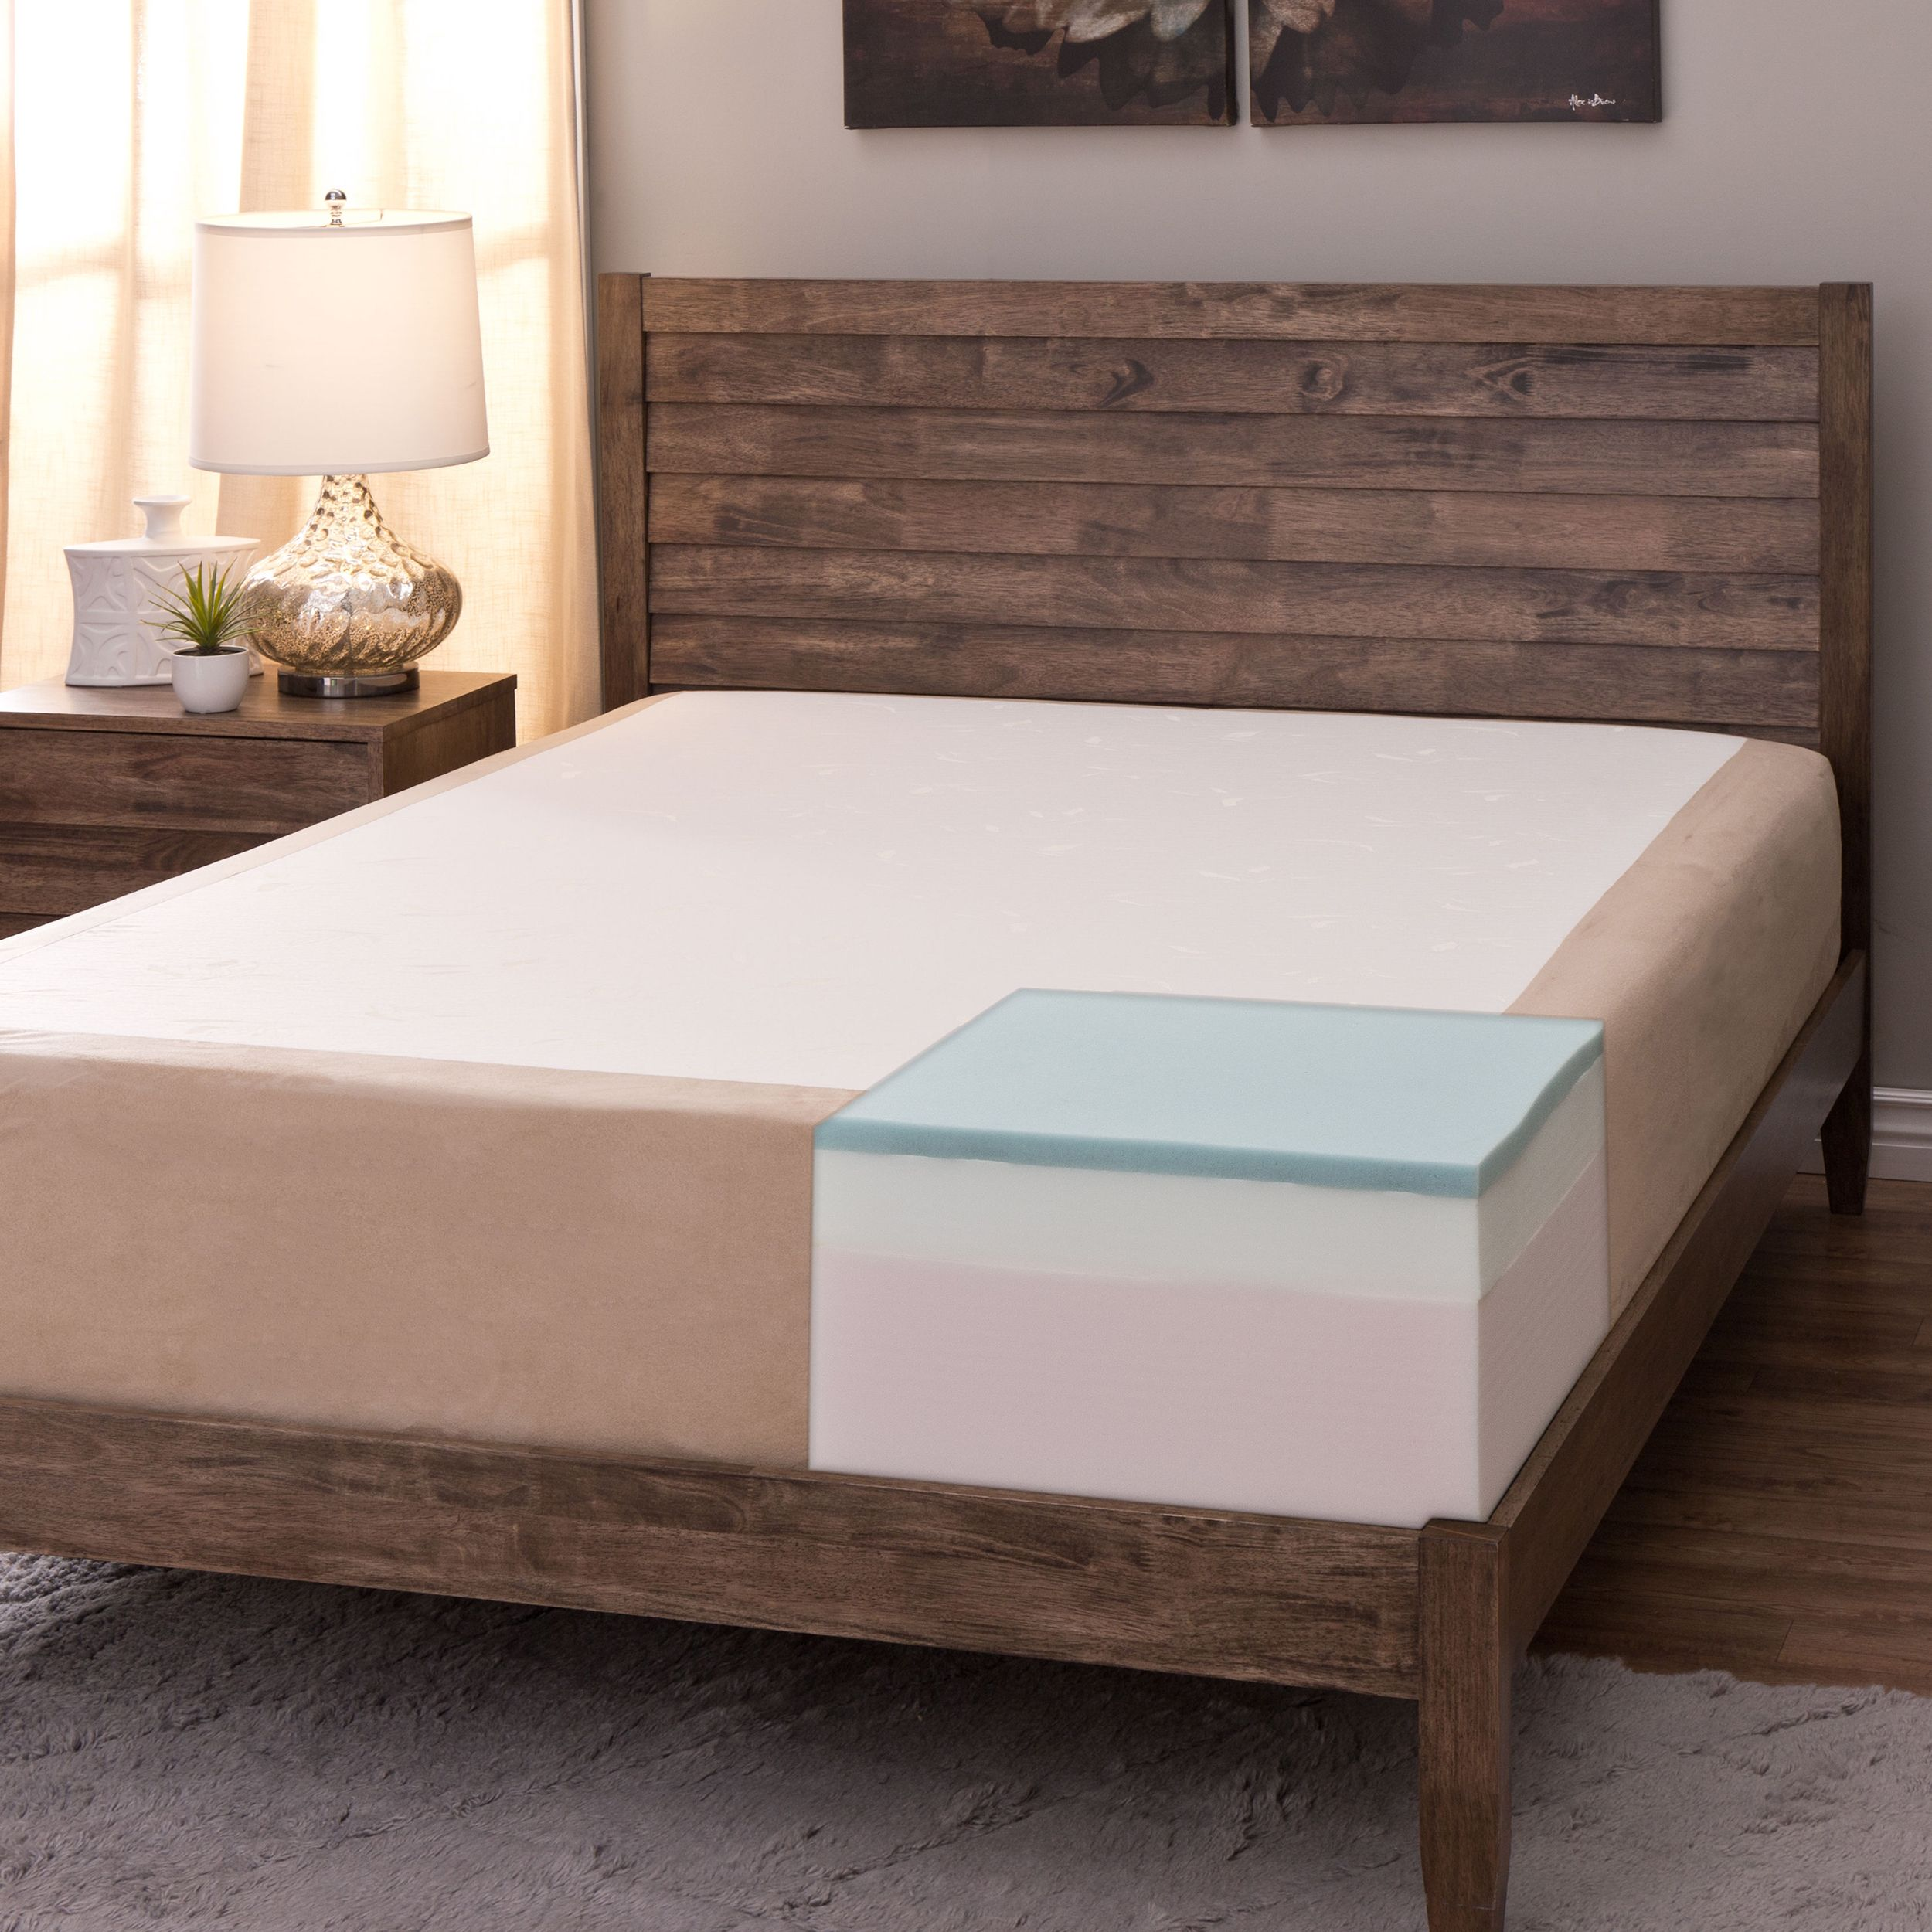 Dreams Mattress Guarantee Comfort Dreams Select A Firmness 11 Inch California King Size